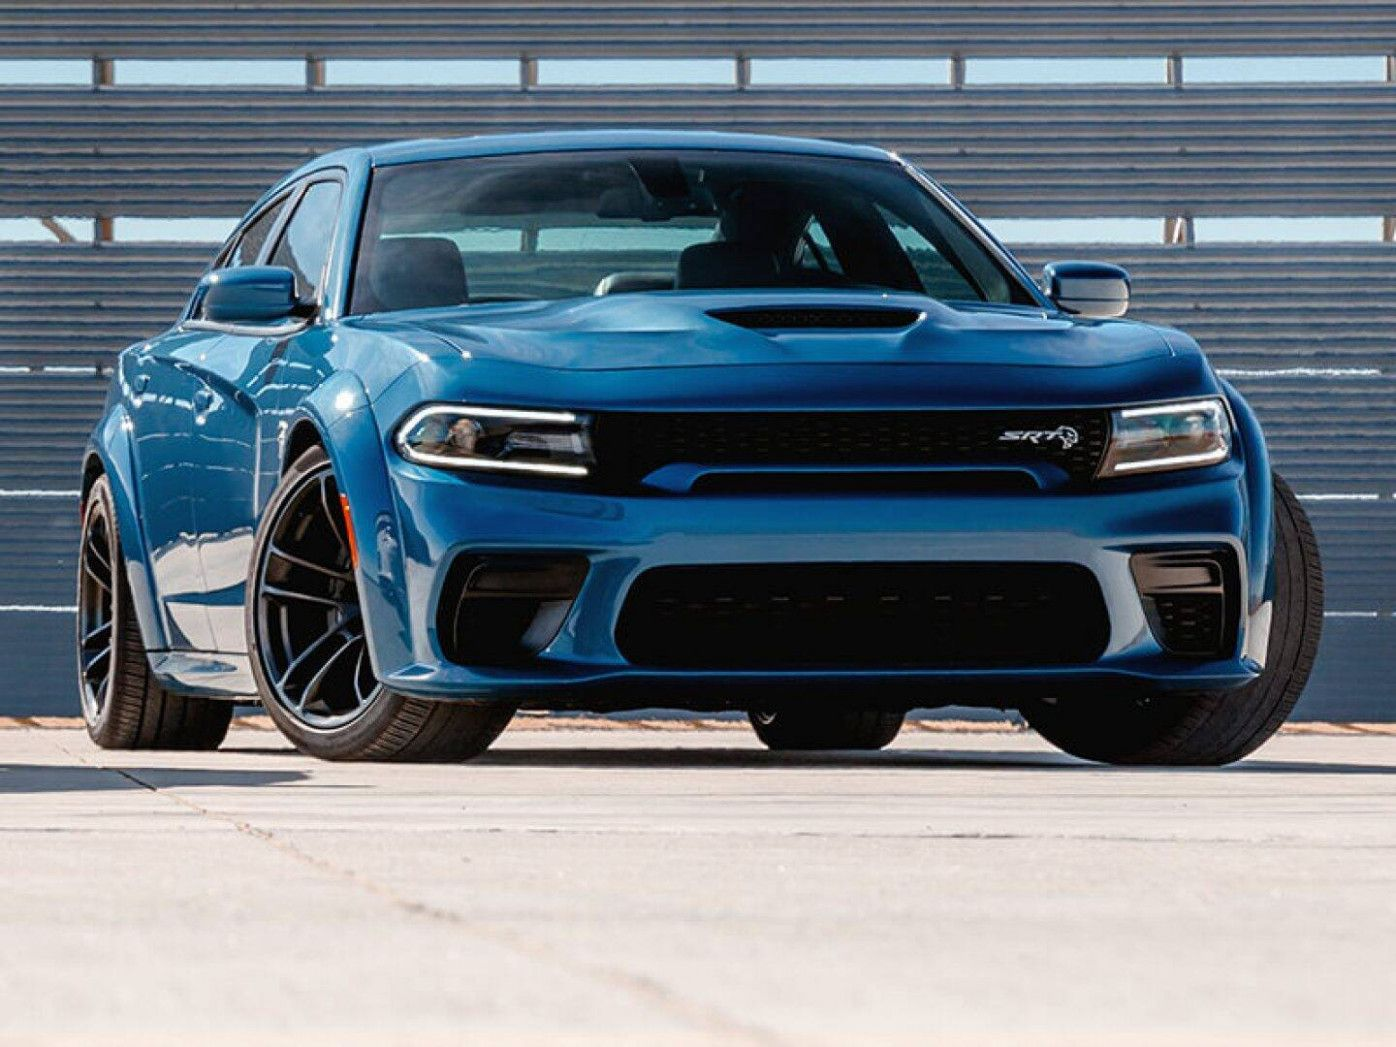 2020 Dodge Magnum Rt In 2020 Dodge Charger Dodge Charger Hellcat Dodge Charger Engine